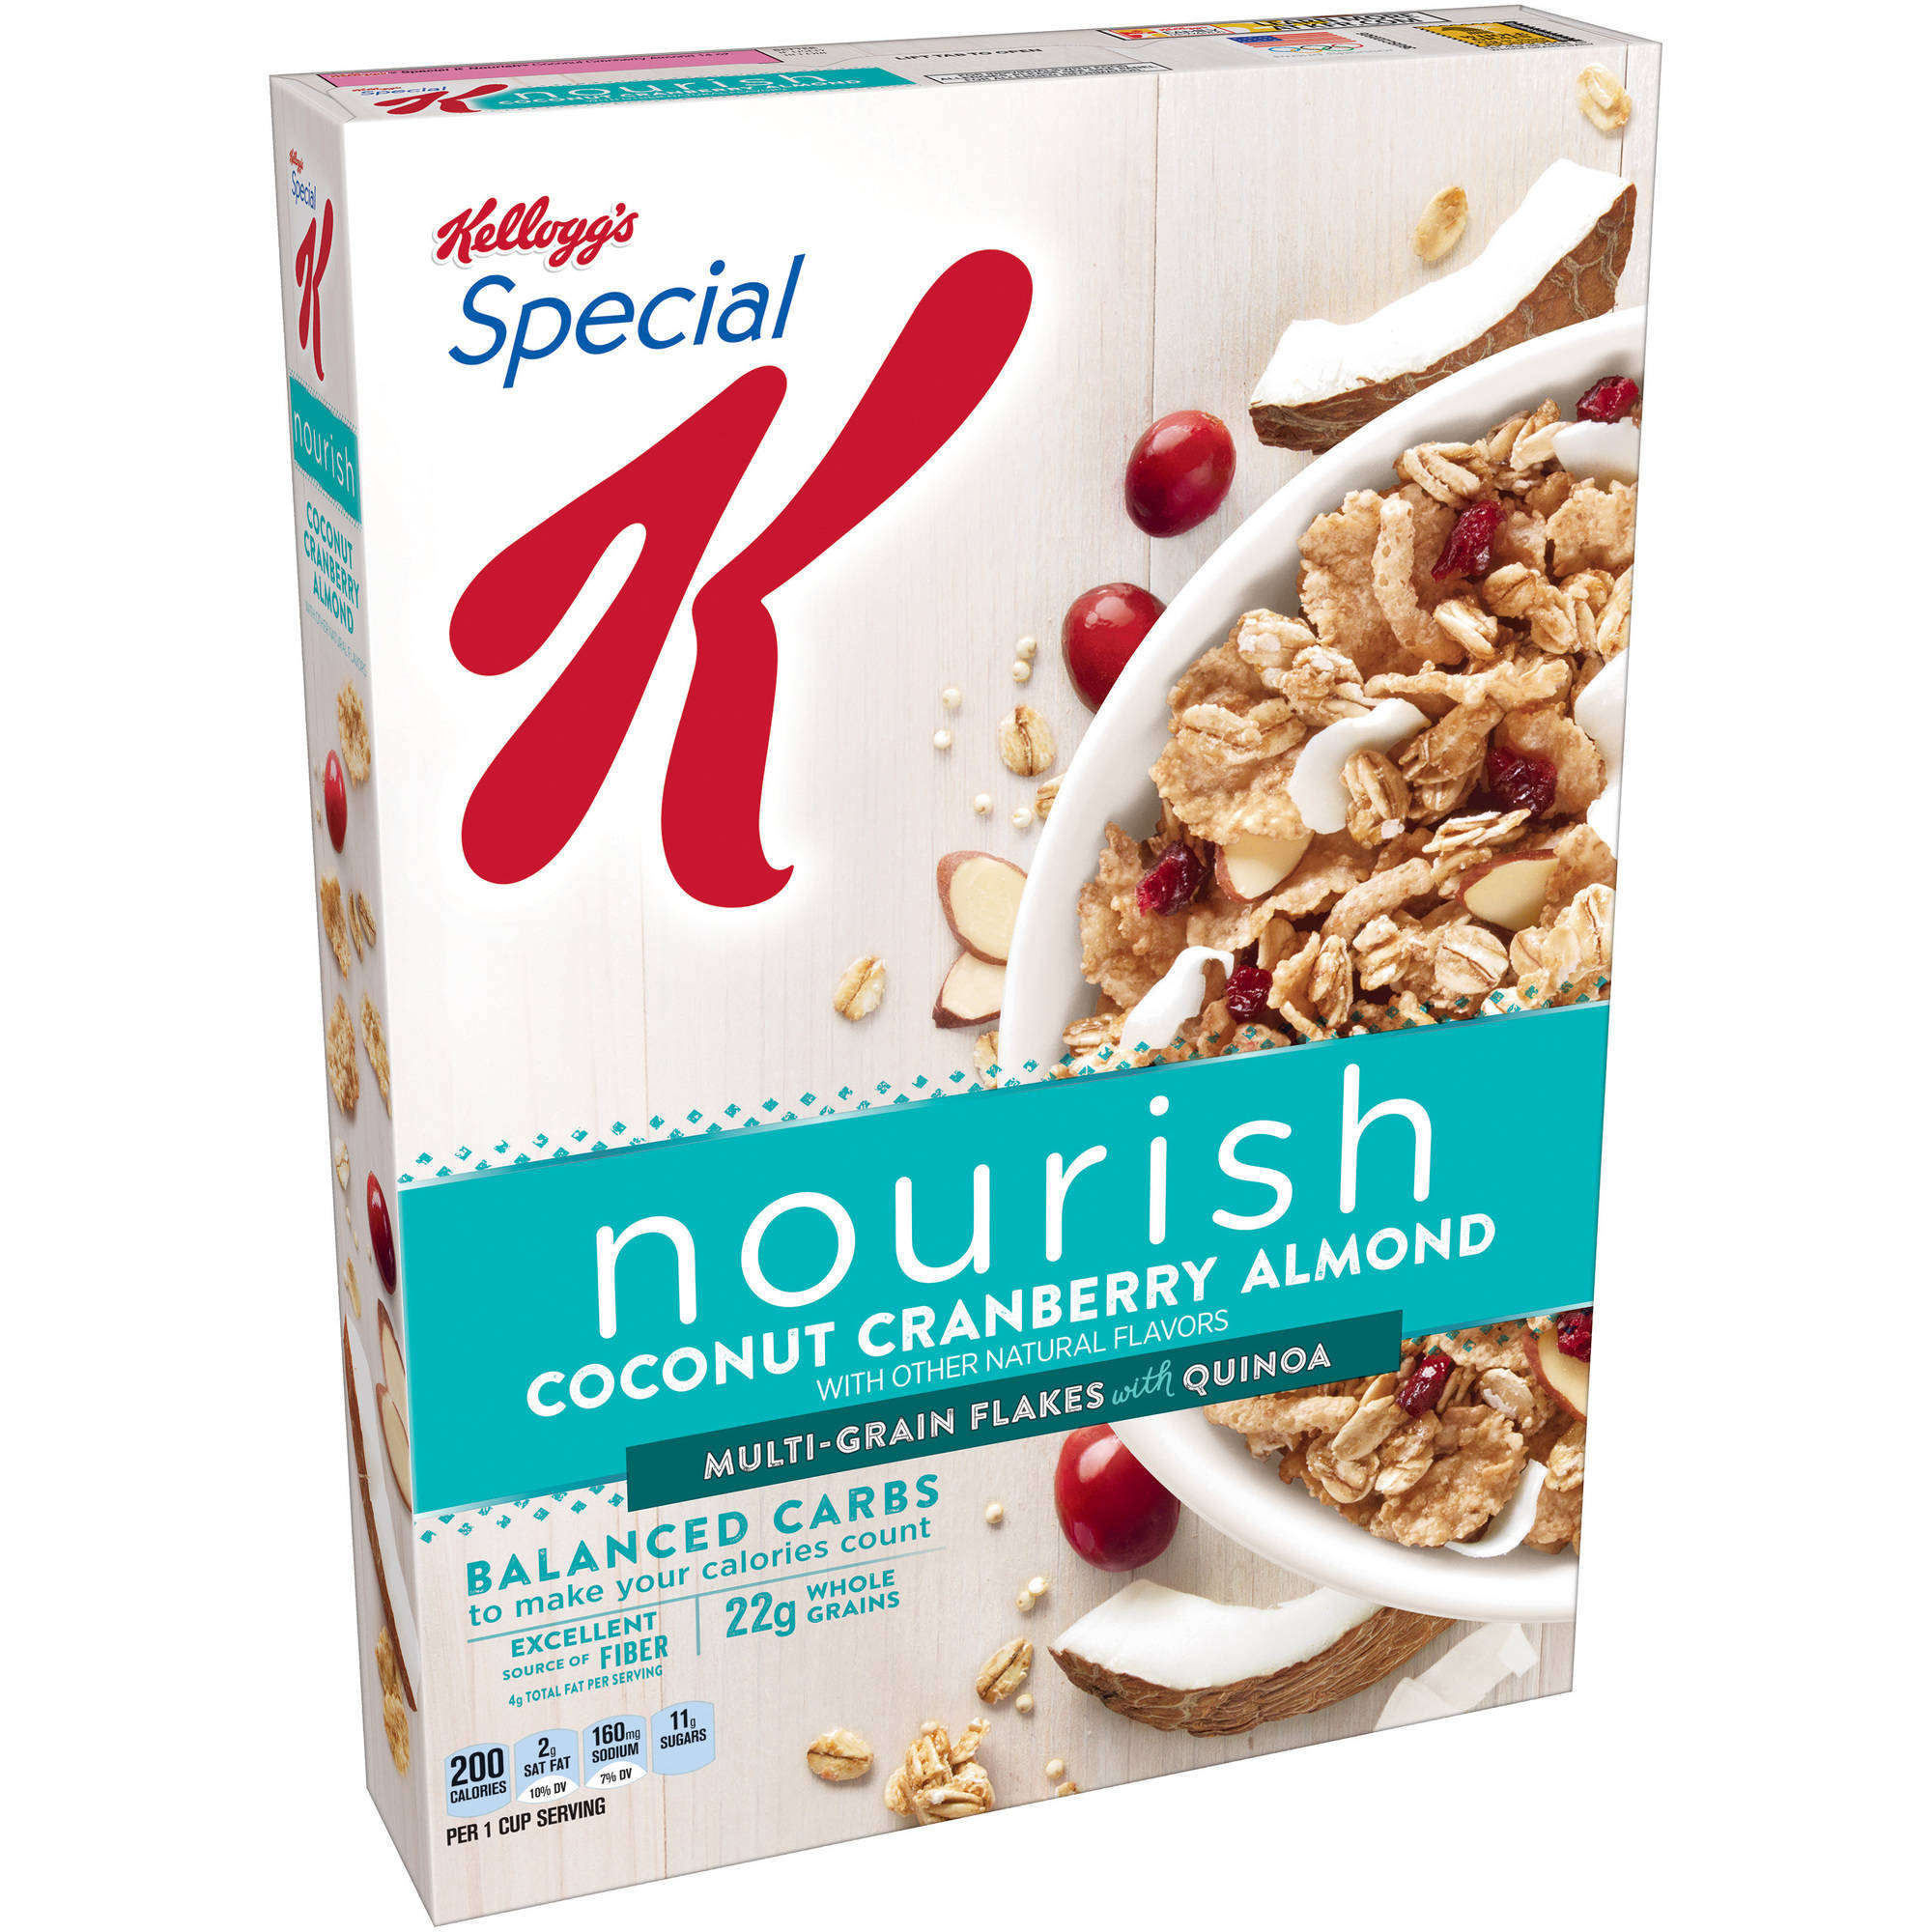 Kellogg's Special K Nourish Coconut Cranberry Almond Cereal, 14 oz